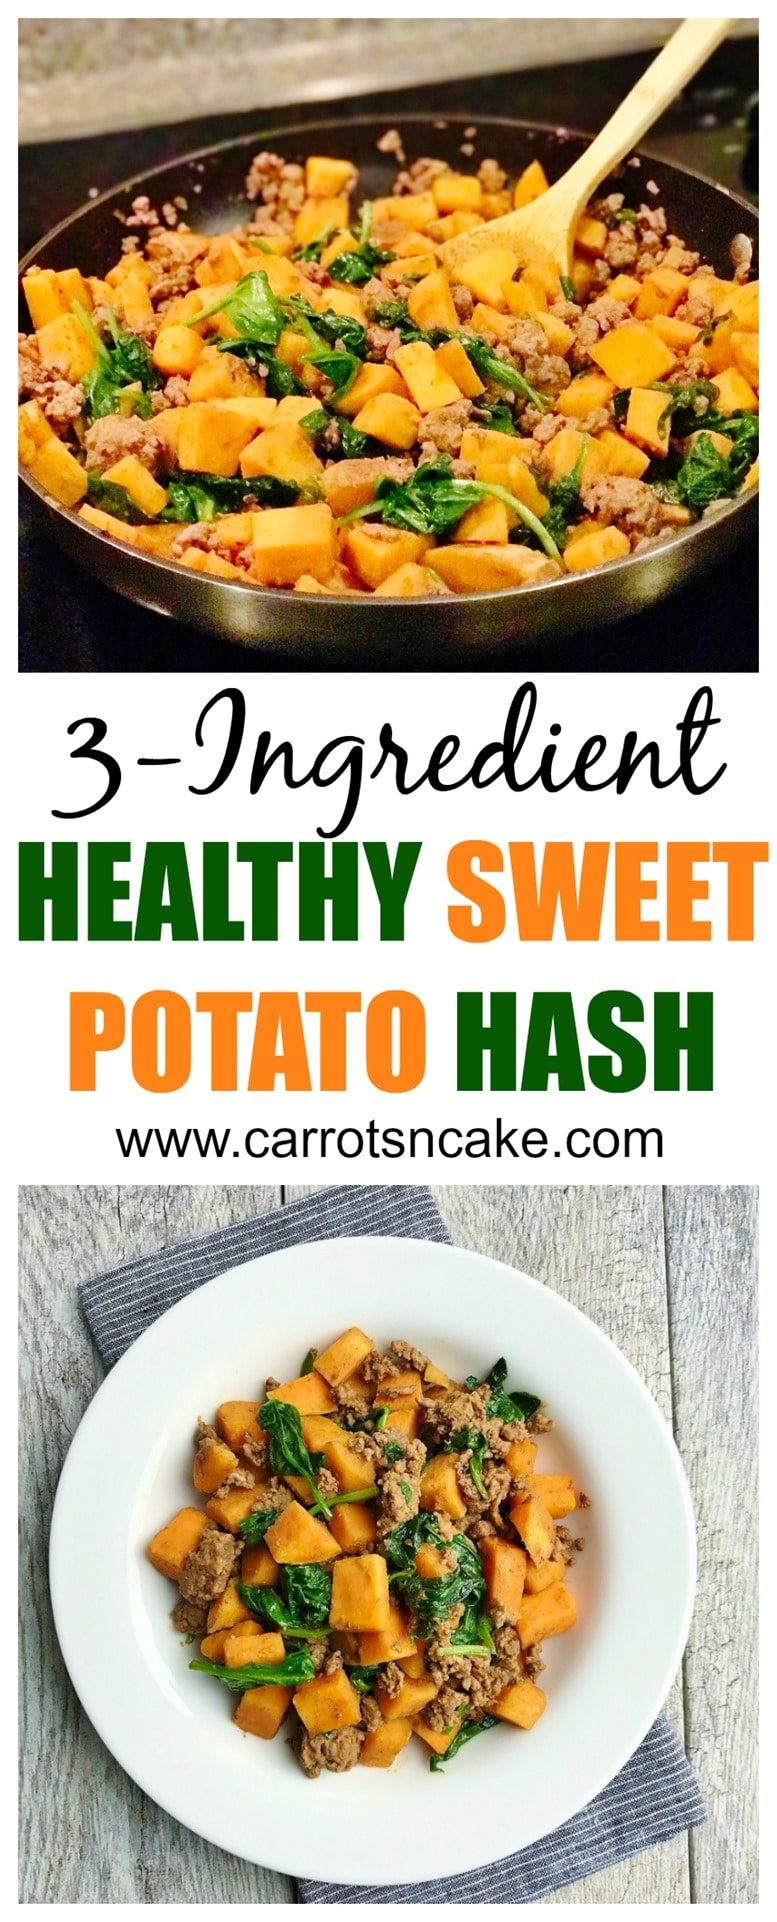 3-Ingredient Healthy Sweet Potato Hash